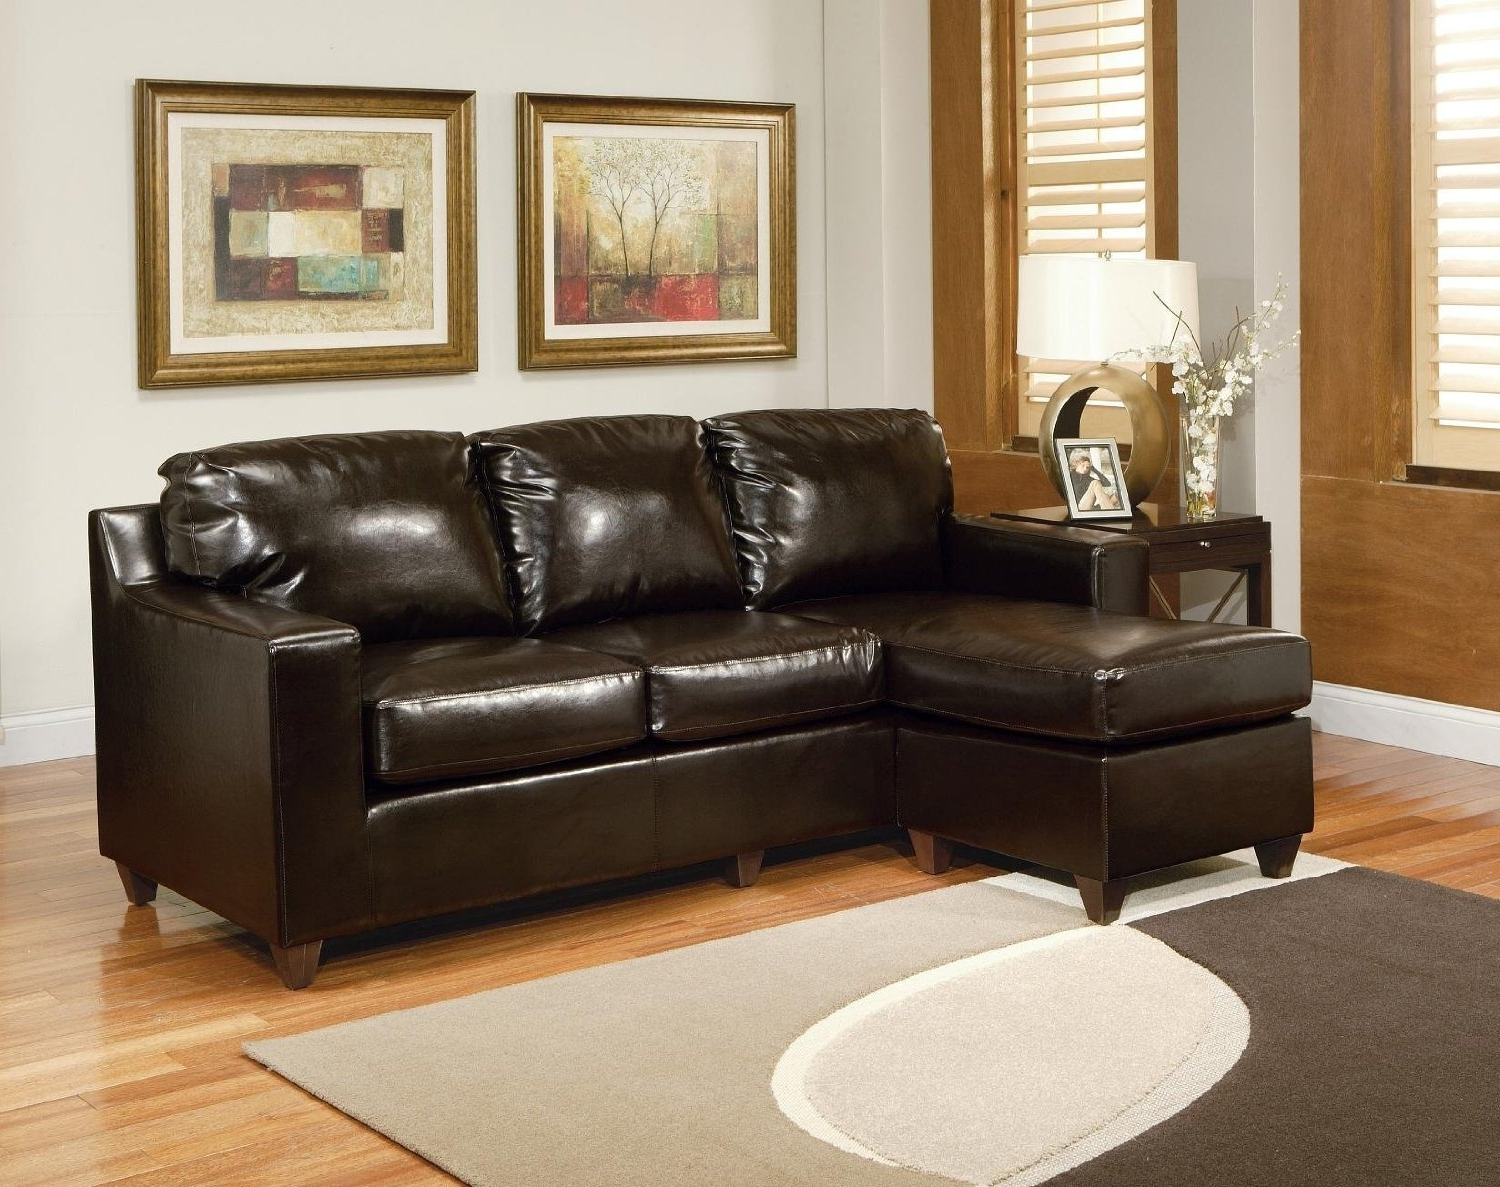 72 Inch Sofa Small Corner Loveseat Best Apartment Sofas Small Throughout Most Up To Date Apartment Sectional Sofas With Chaise (View 12 of 15)